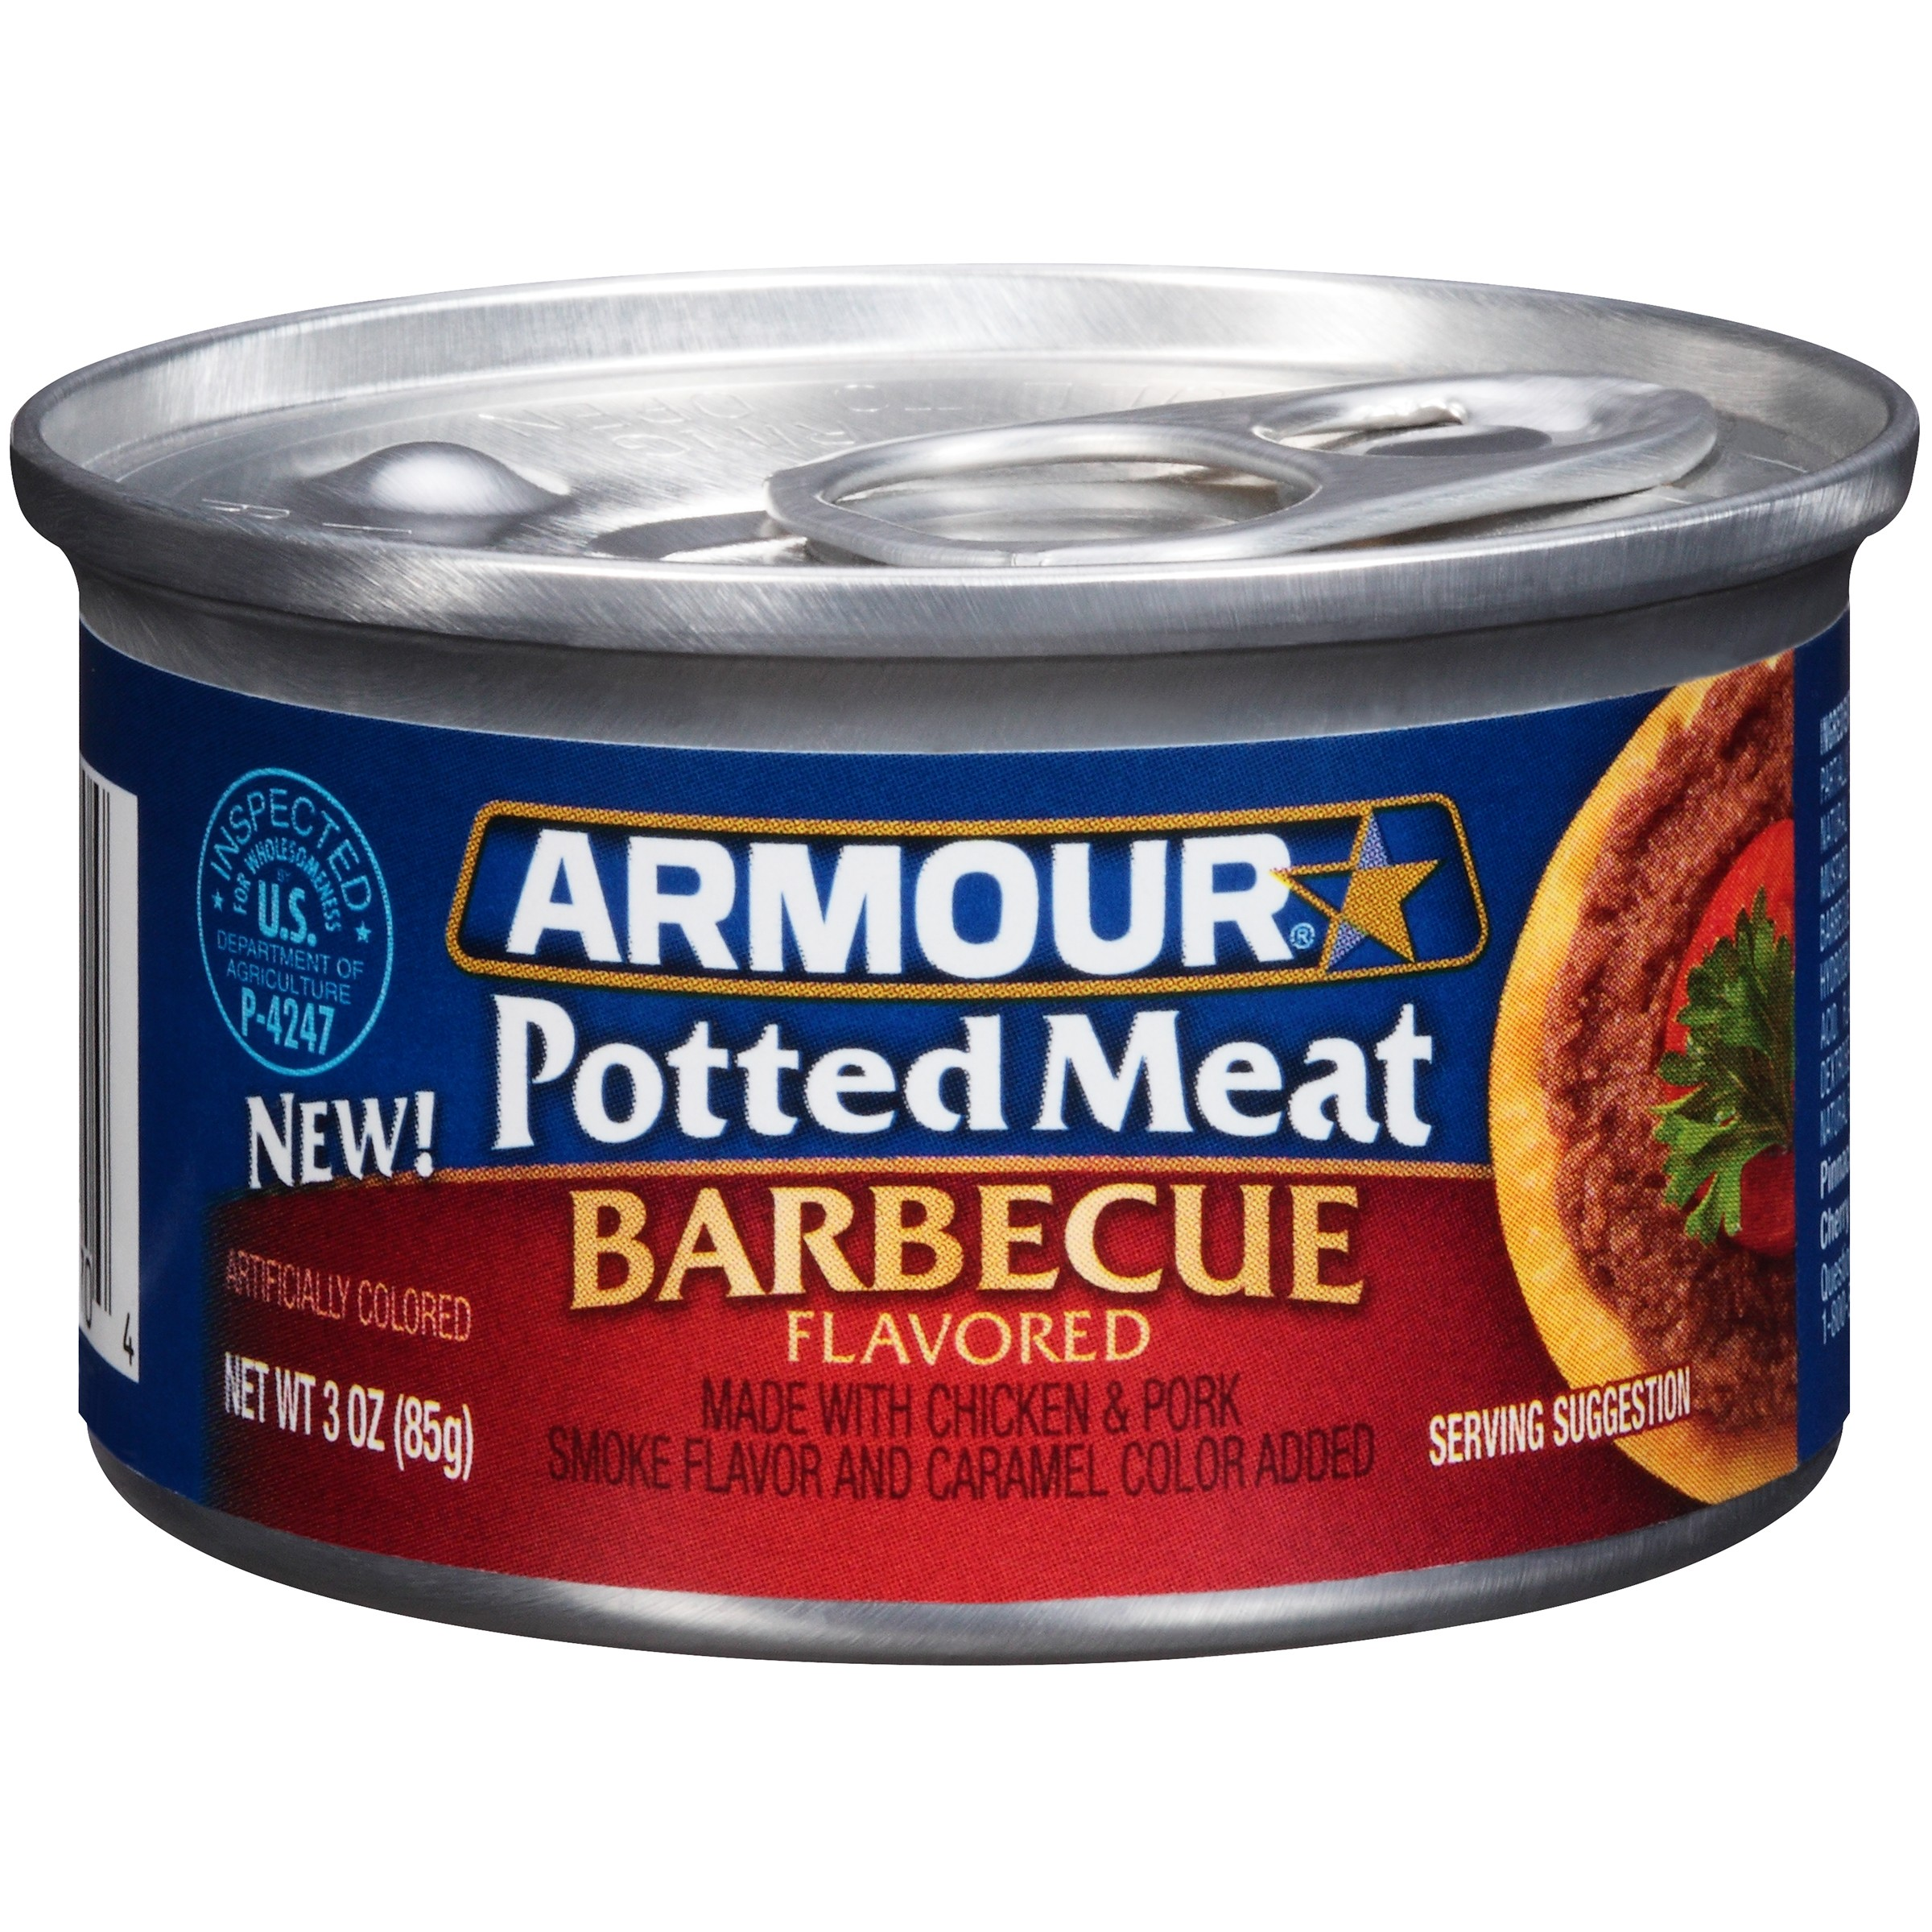 Armour? Barbecue Flavored Chicken & Pork Potted Meat 3 oz. Can by Pinnacle Foods Group, Llc